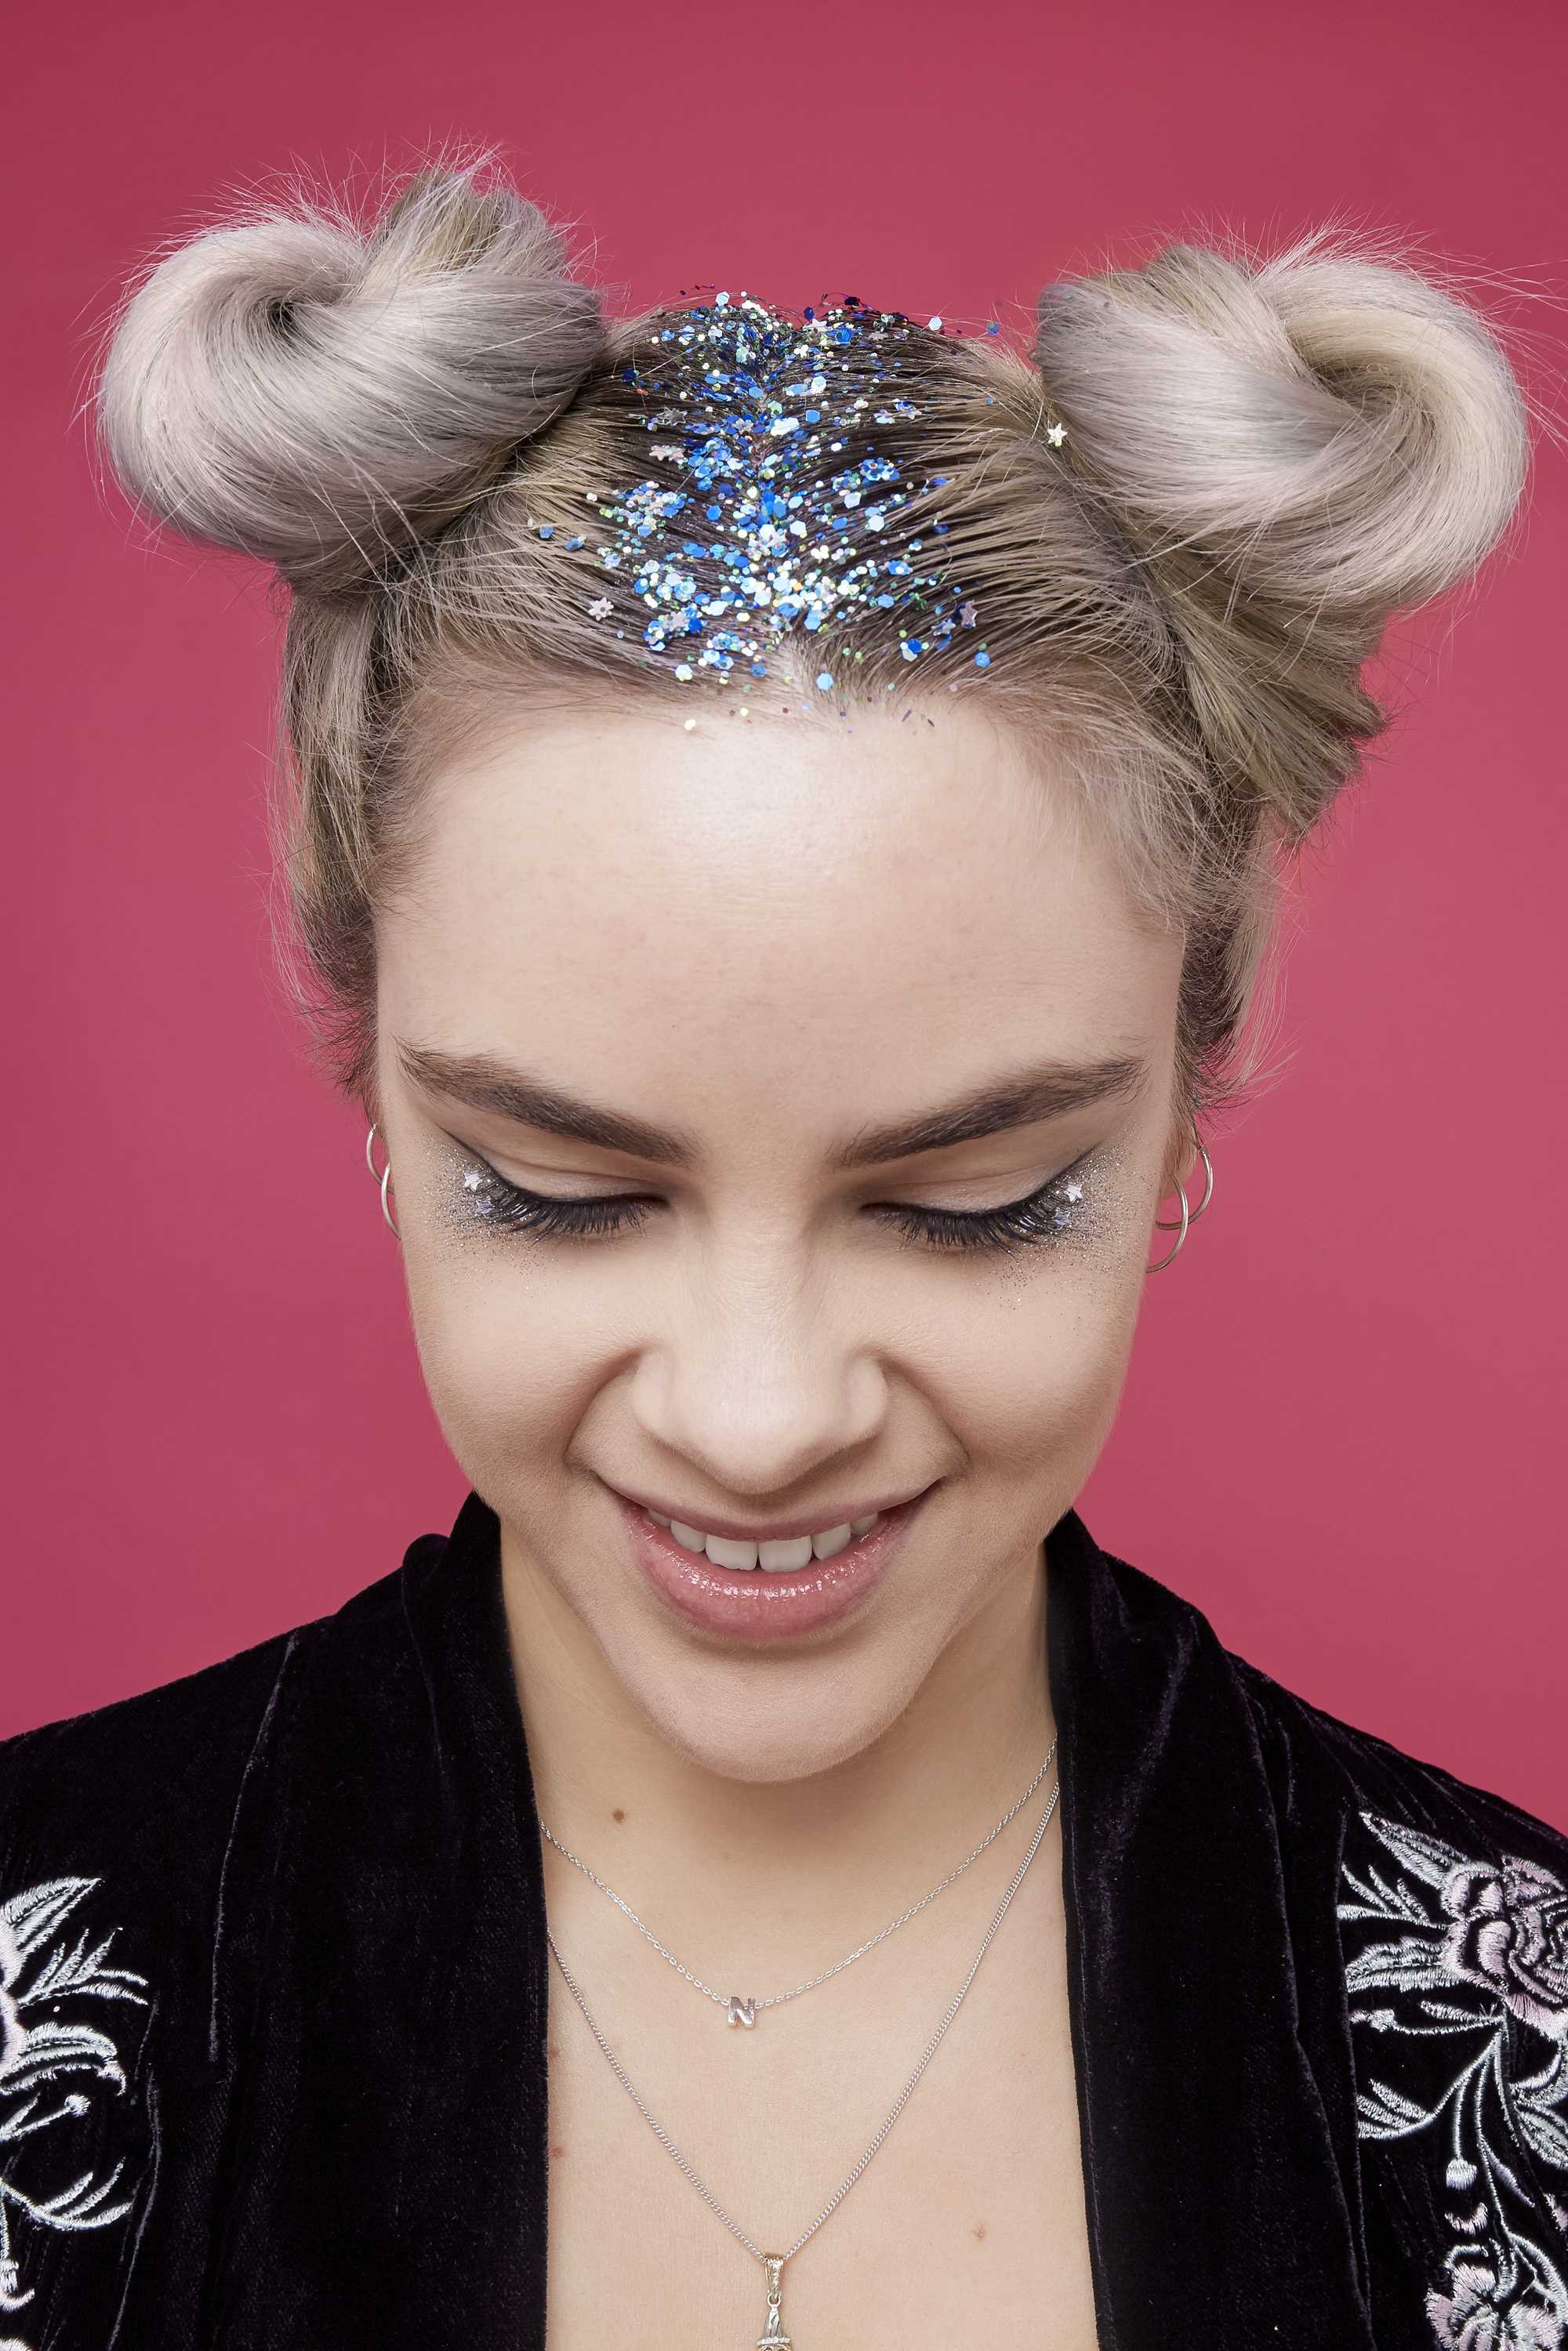 Blonde woman with space buns and blue glitter roots, wearing a black embroidered velvet jacket and standing against a pink background